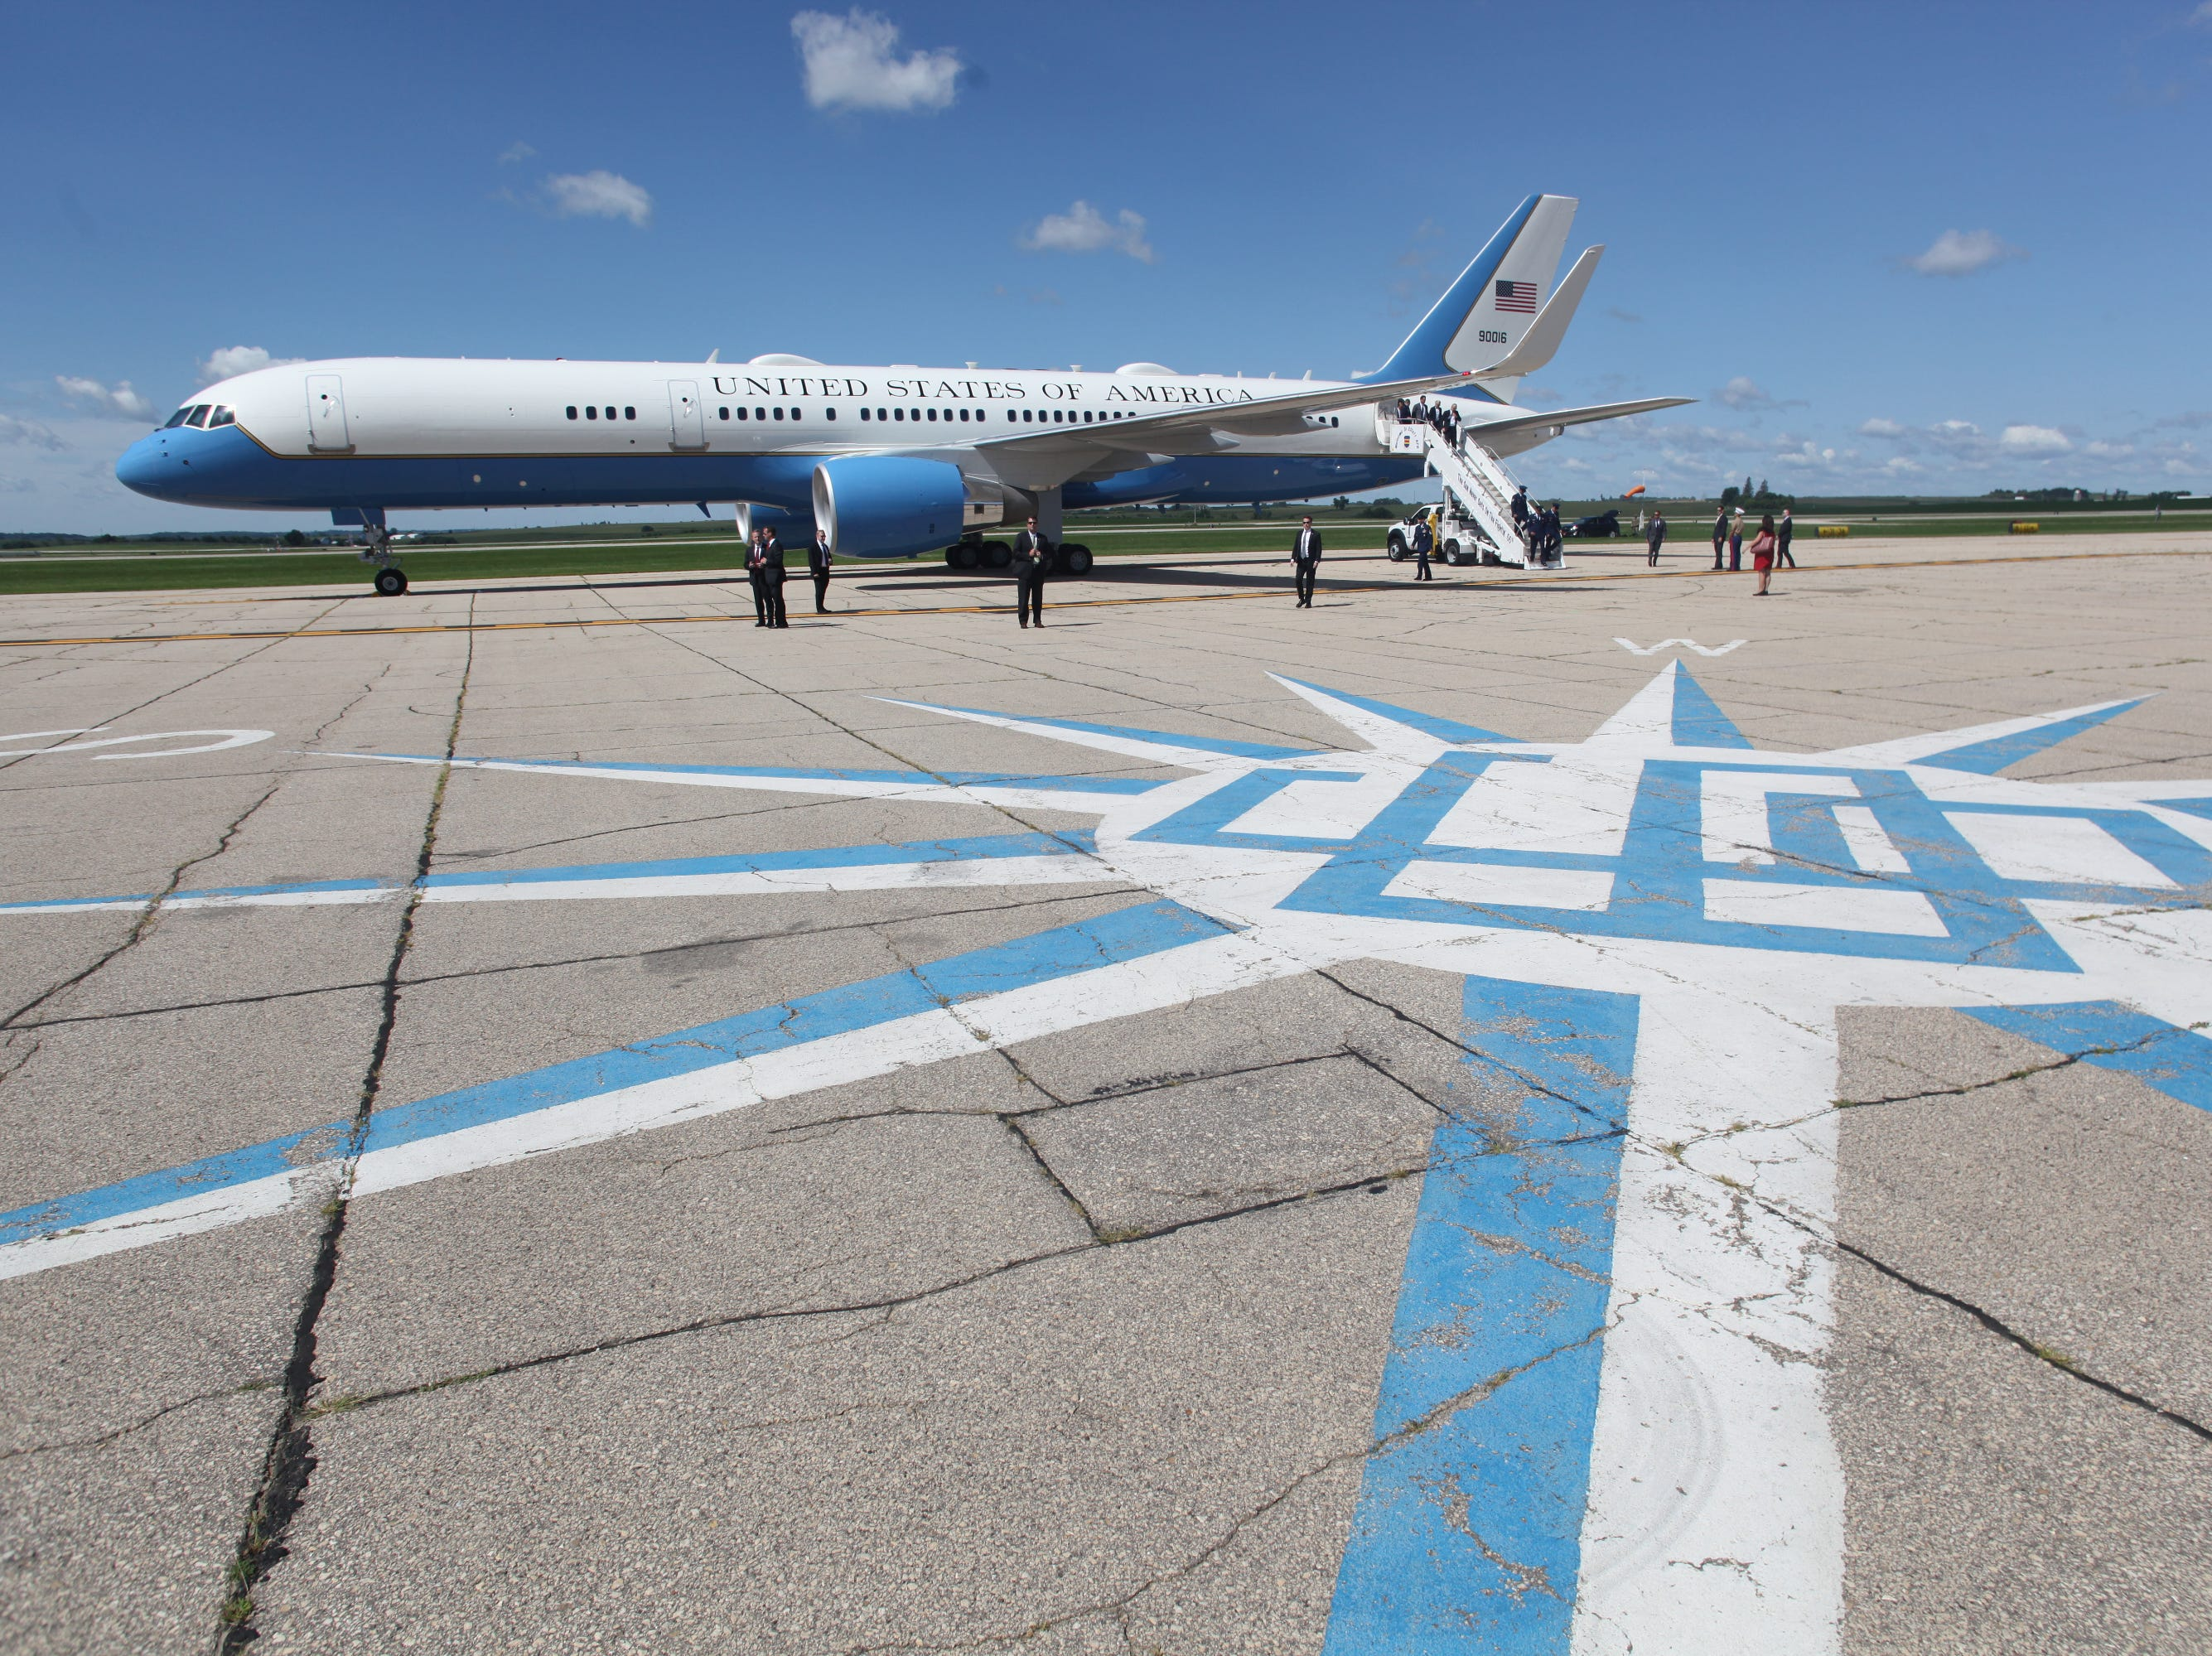 Air Force One sits on the Tarmac at Dubuque Regional Airport in Dubuque, Iowa, on Thursday morning, July 26, 2018. Trump was in the state to participate in a roundtable discussion about workforce development at Northeast Iowa Community College in Peosta, Iowa.